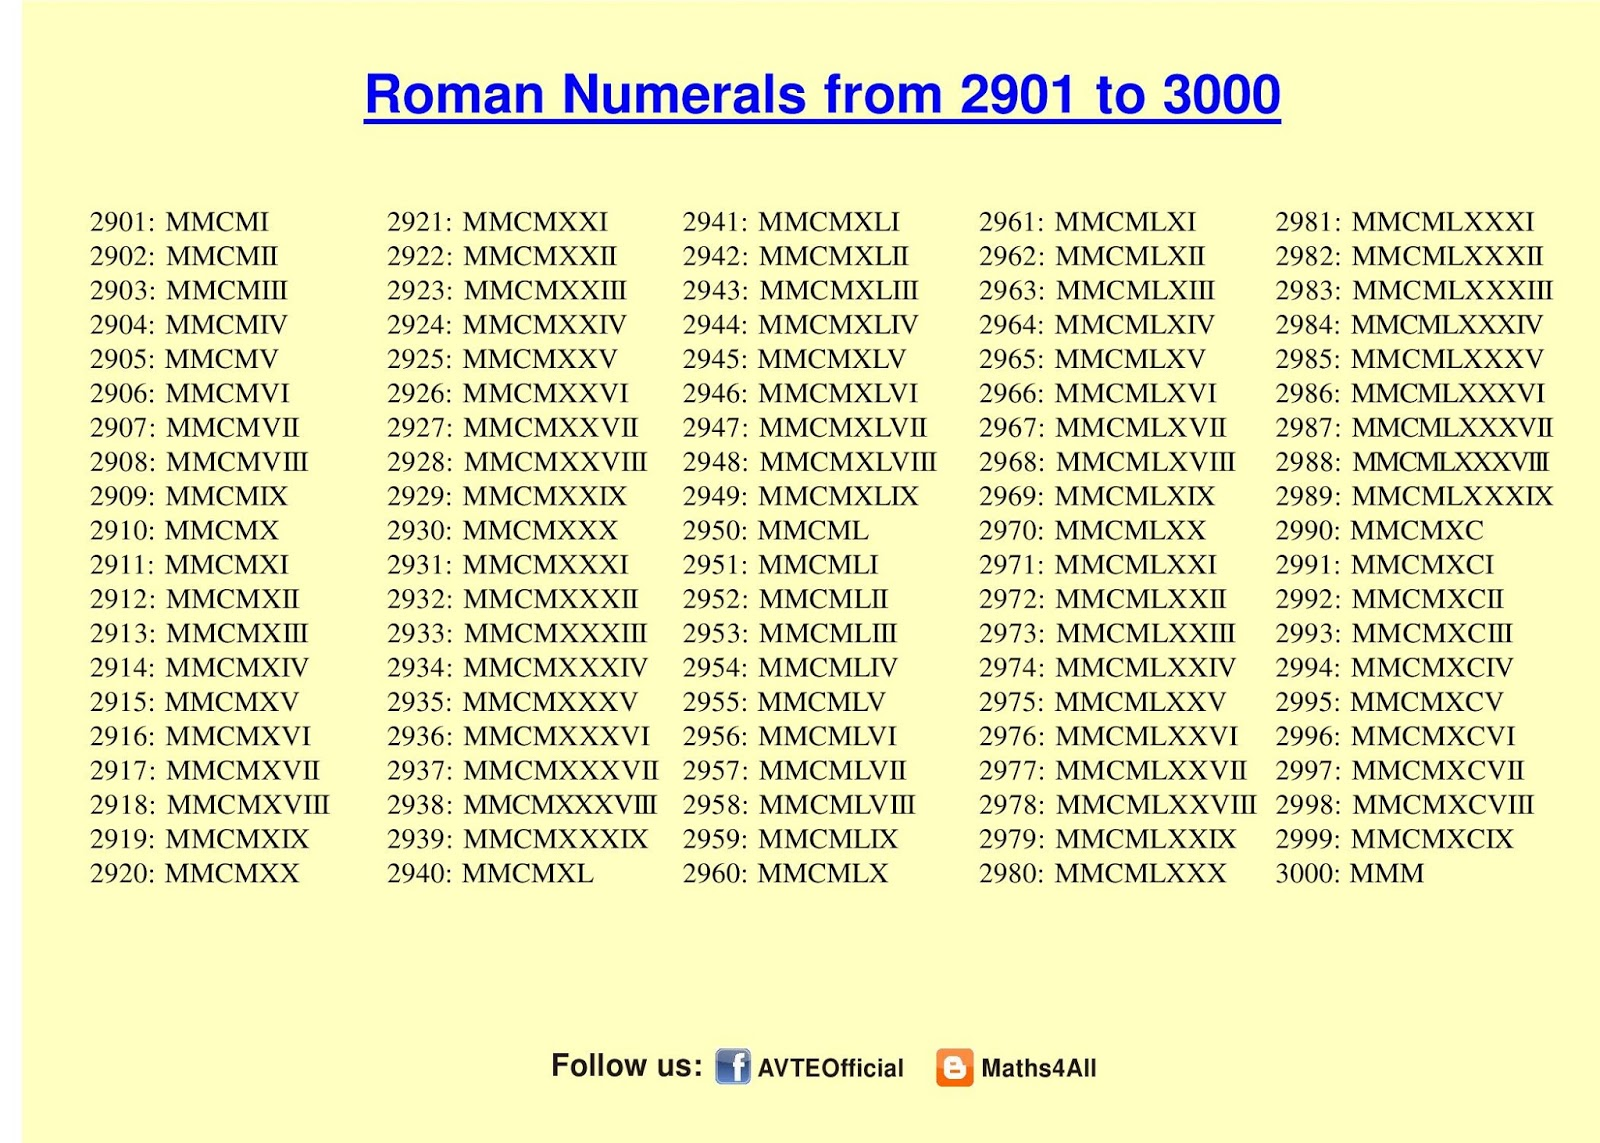 Maths4all vipin setia roman numerals 2901 to 3000 thecheapjerseys Choice Image